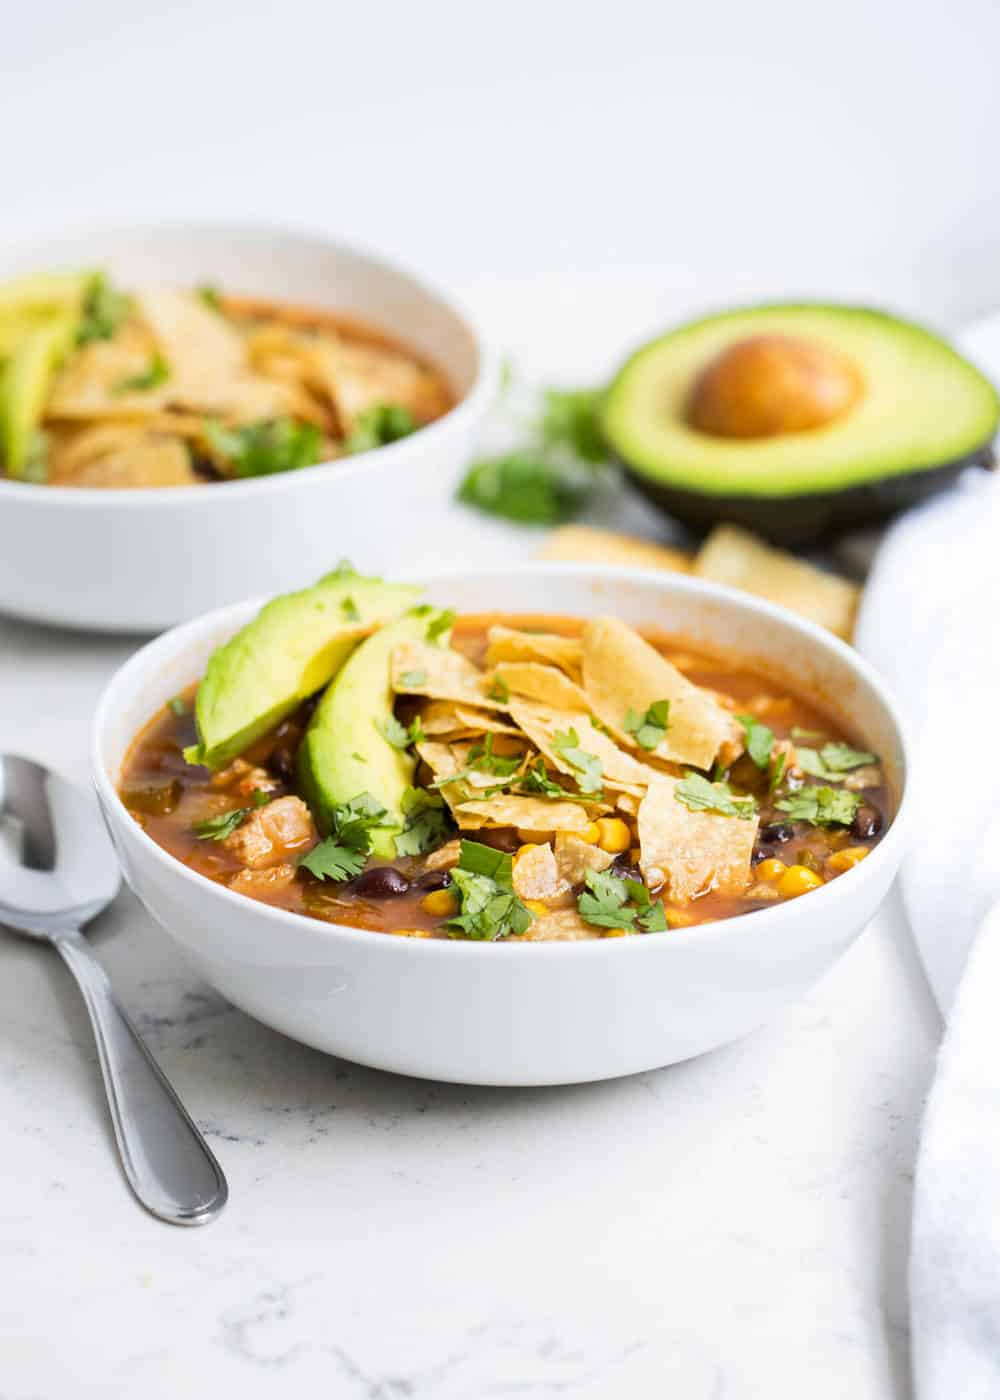 Chicken tortilla soup in white bowls with avocado